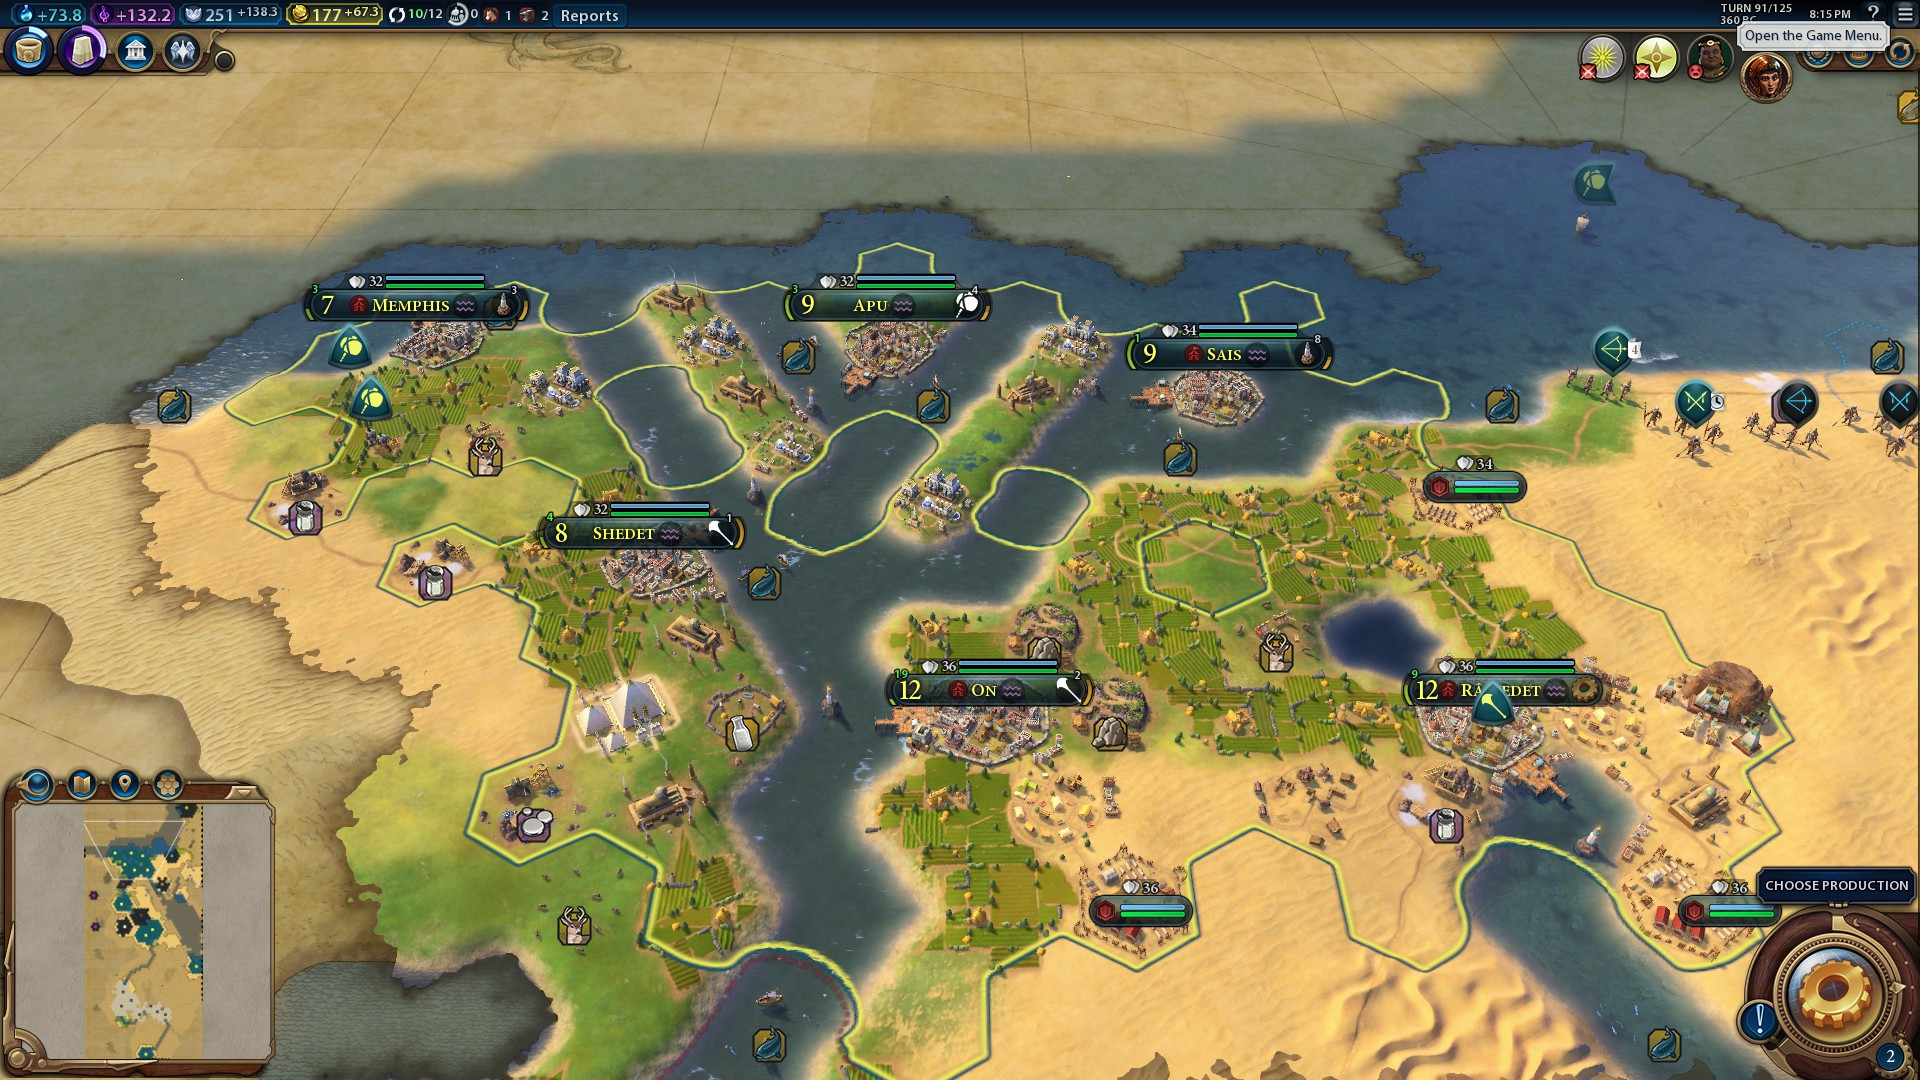 Steam Community :: Guide :: Gifts Of The Nile Scenario Guide